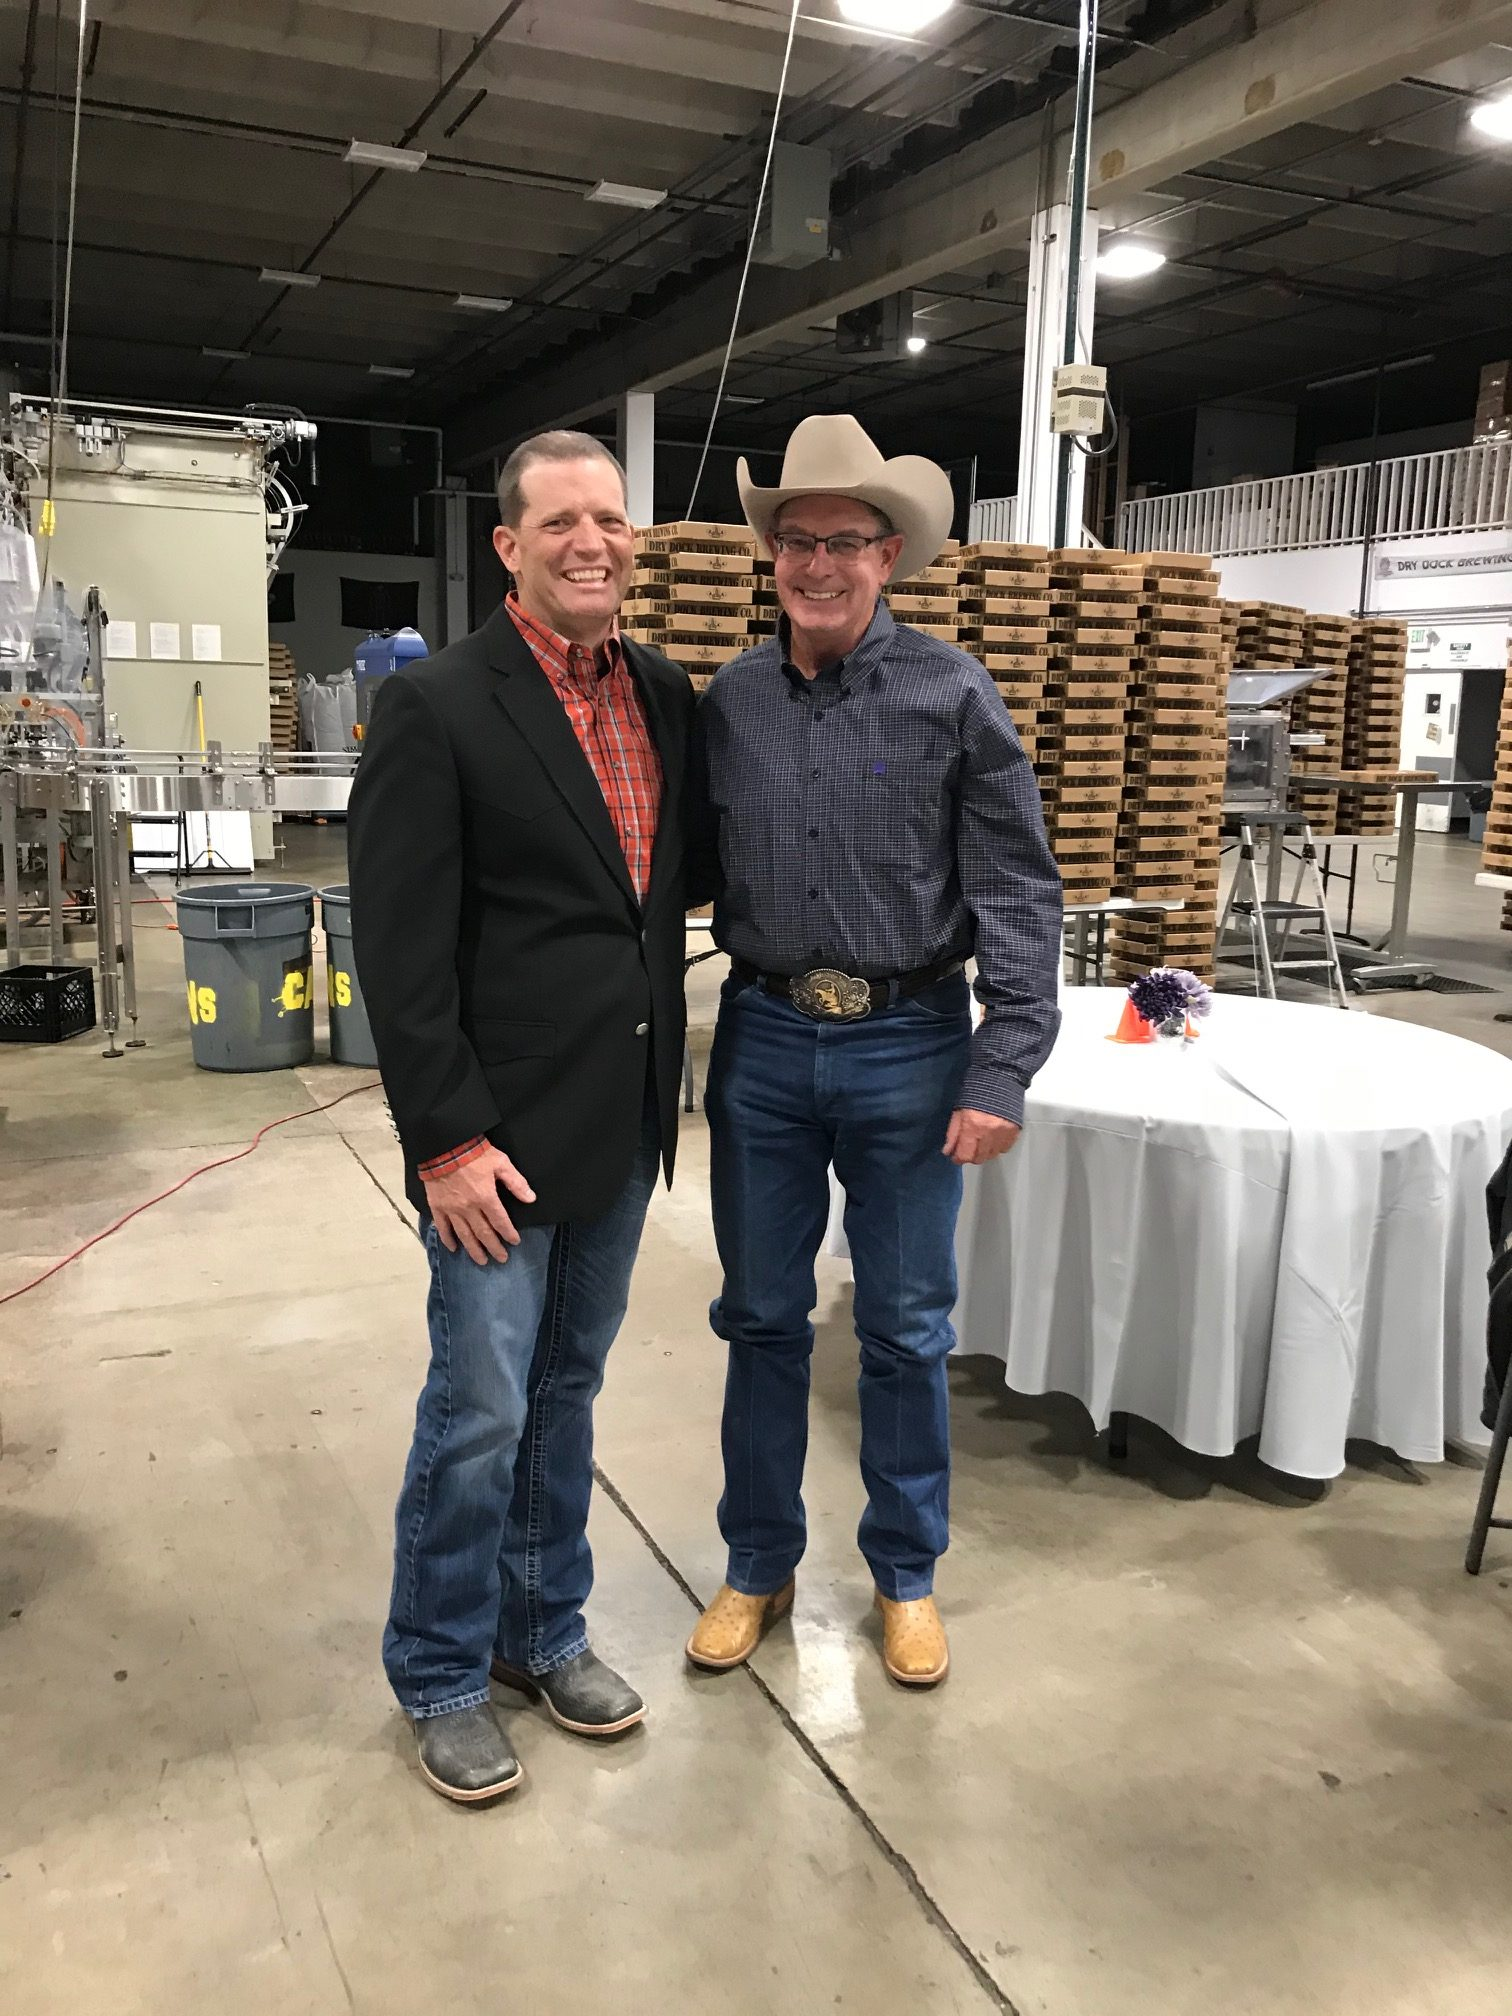 2019 Lifetime Achievement Award Recipient Steve Schwartzenberger with RMRHA President Travis Chapman